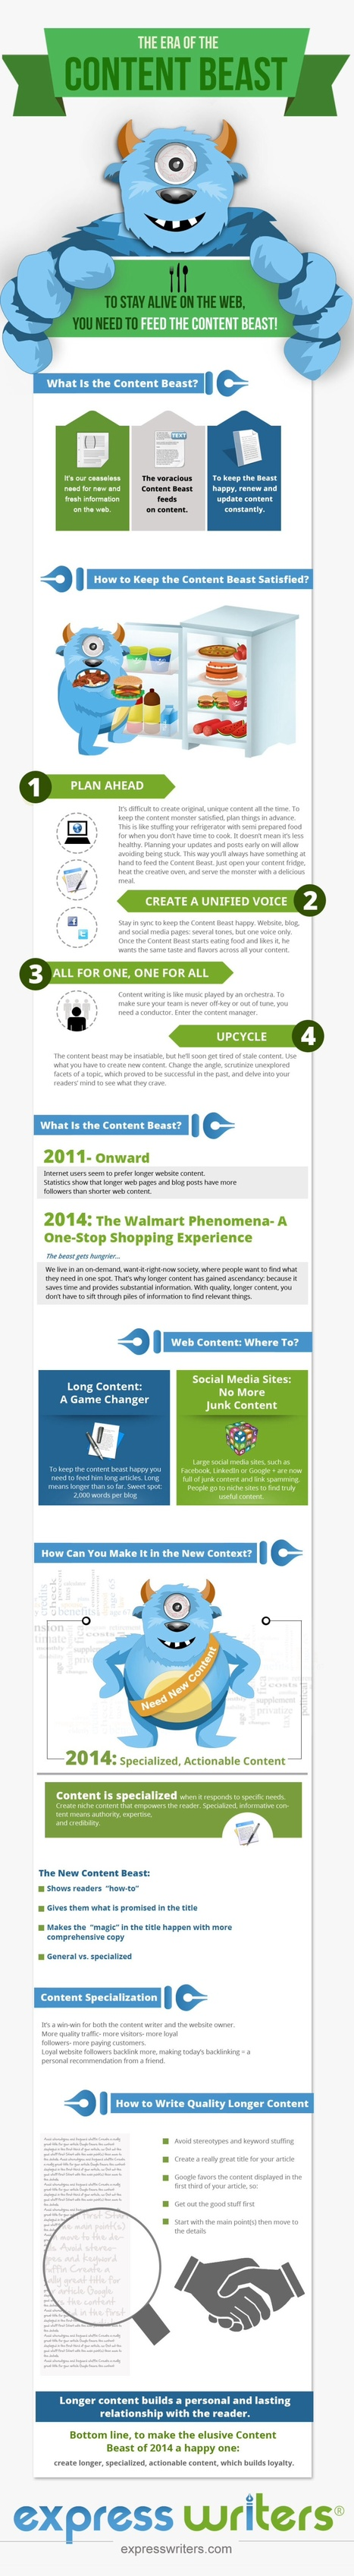 The Era of the Content Beast [INFOGRAPHIC] | Surviving Social Chaos | Scoop.it